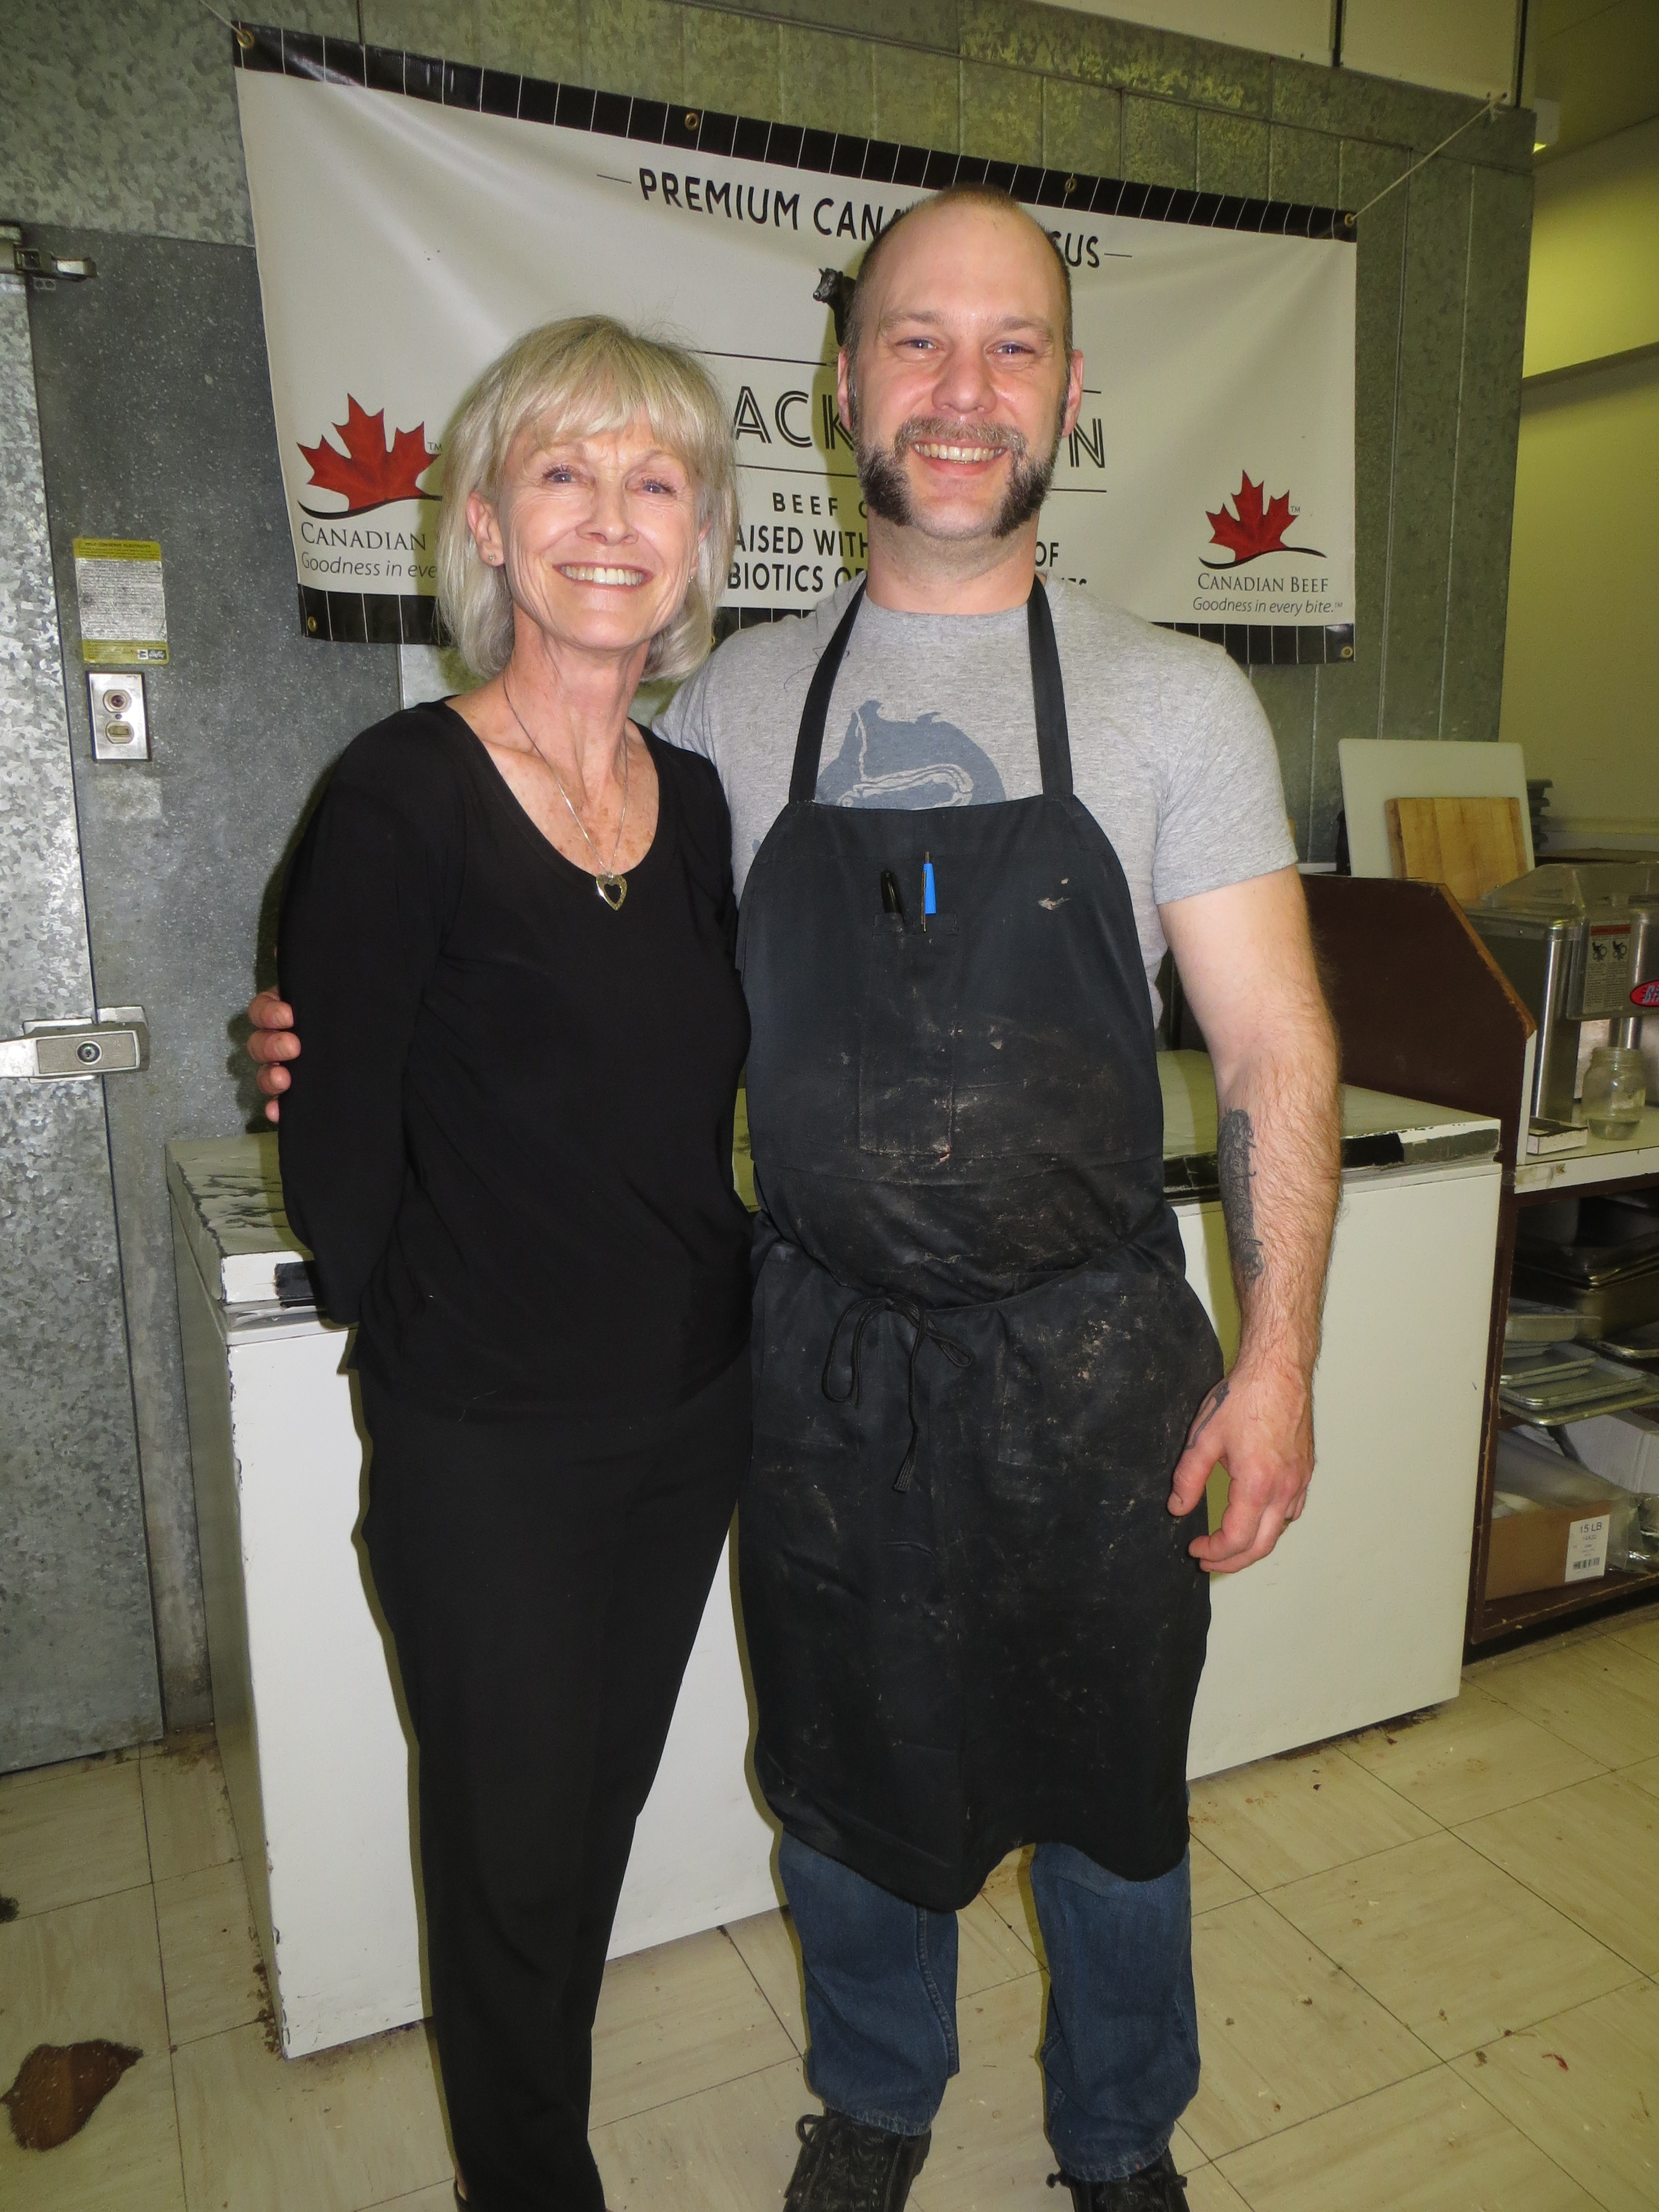 Acme Meat Market in Ritchie, meet the Owner Corey Meyer